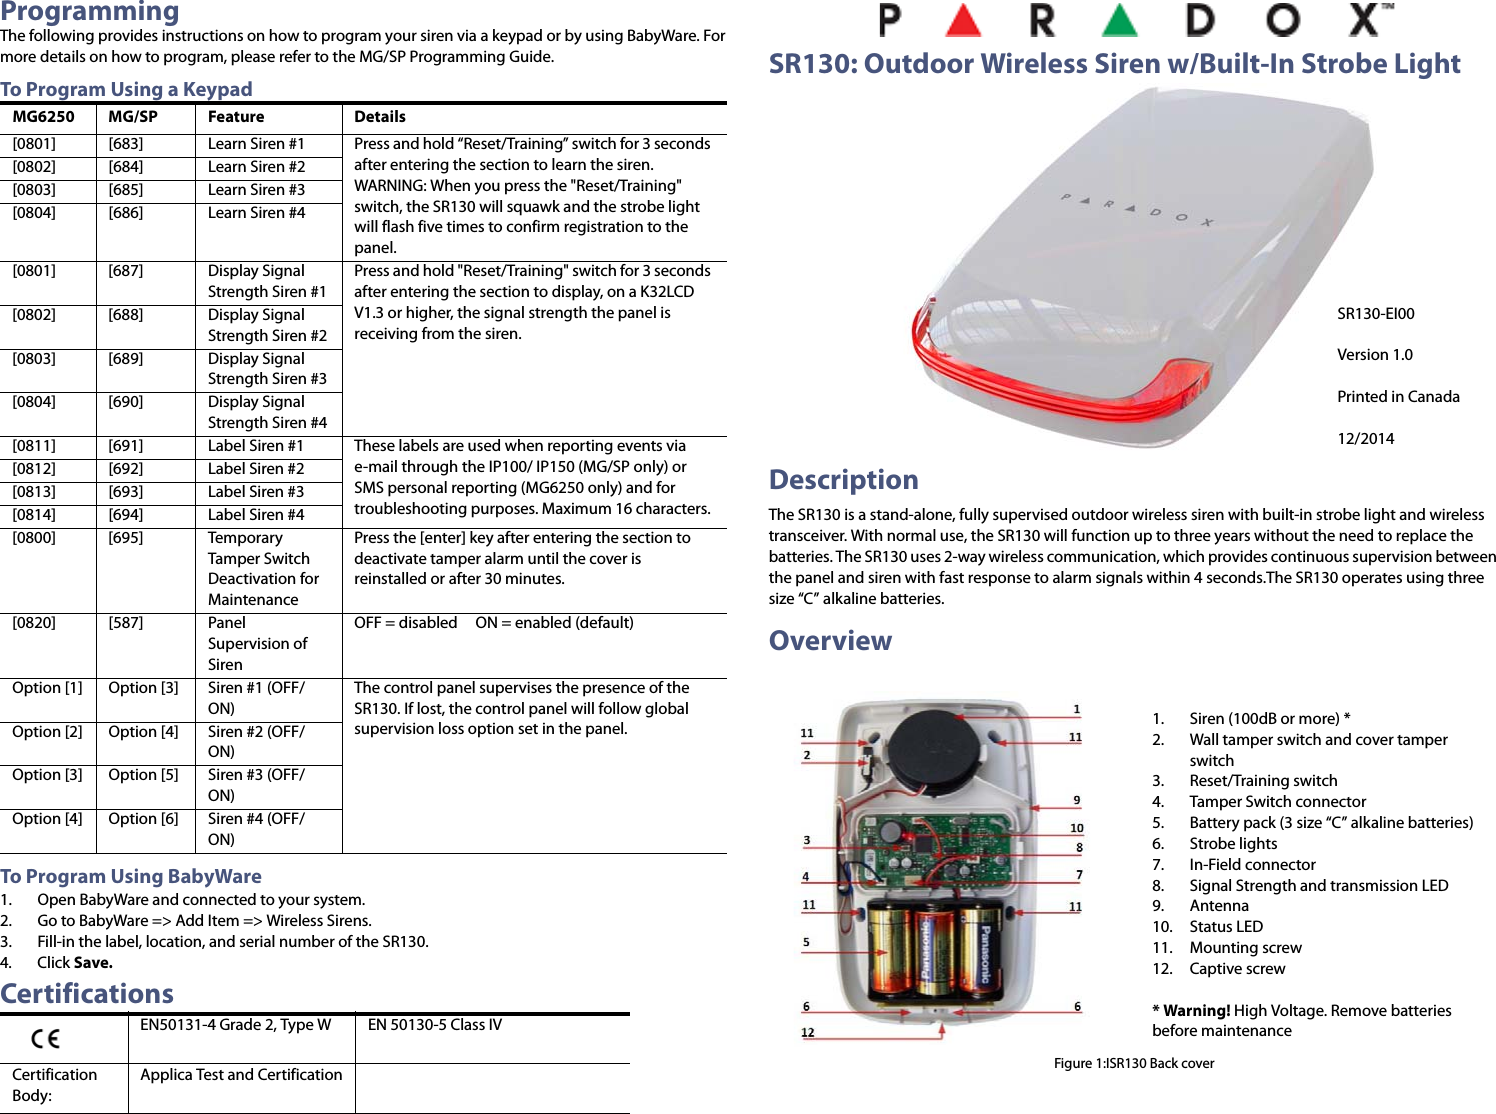 Paradox Security Systems SR130 Outdoor Wireless Siren User Manual